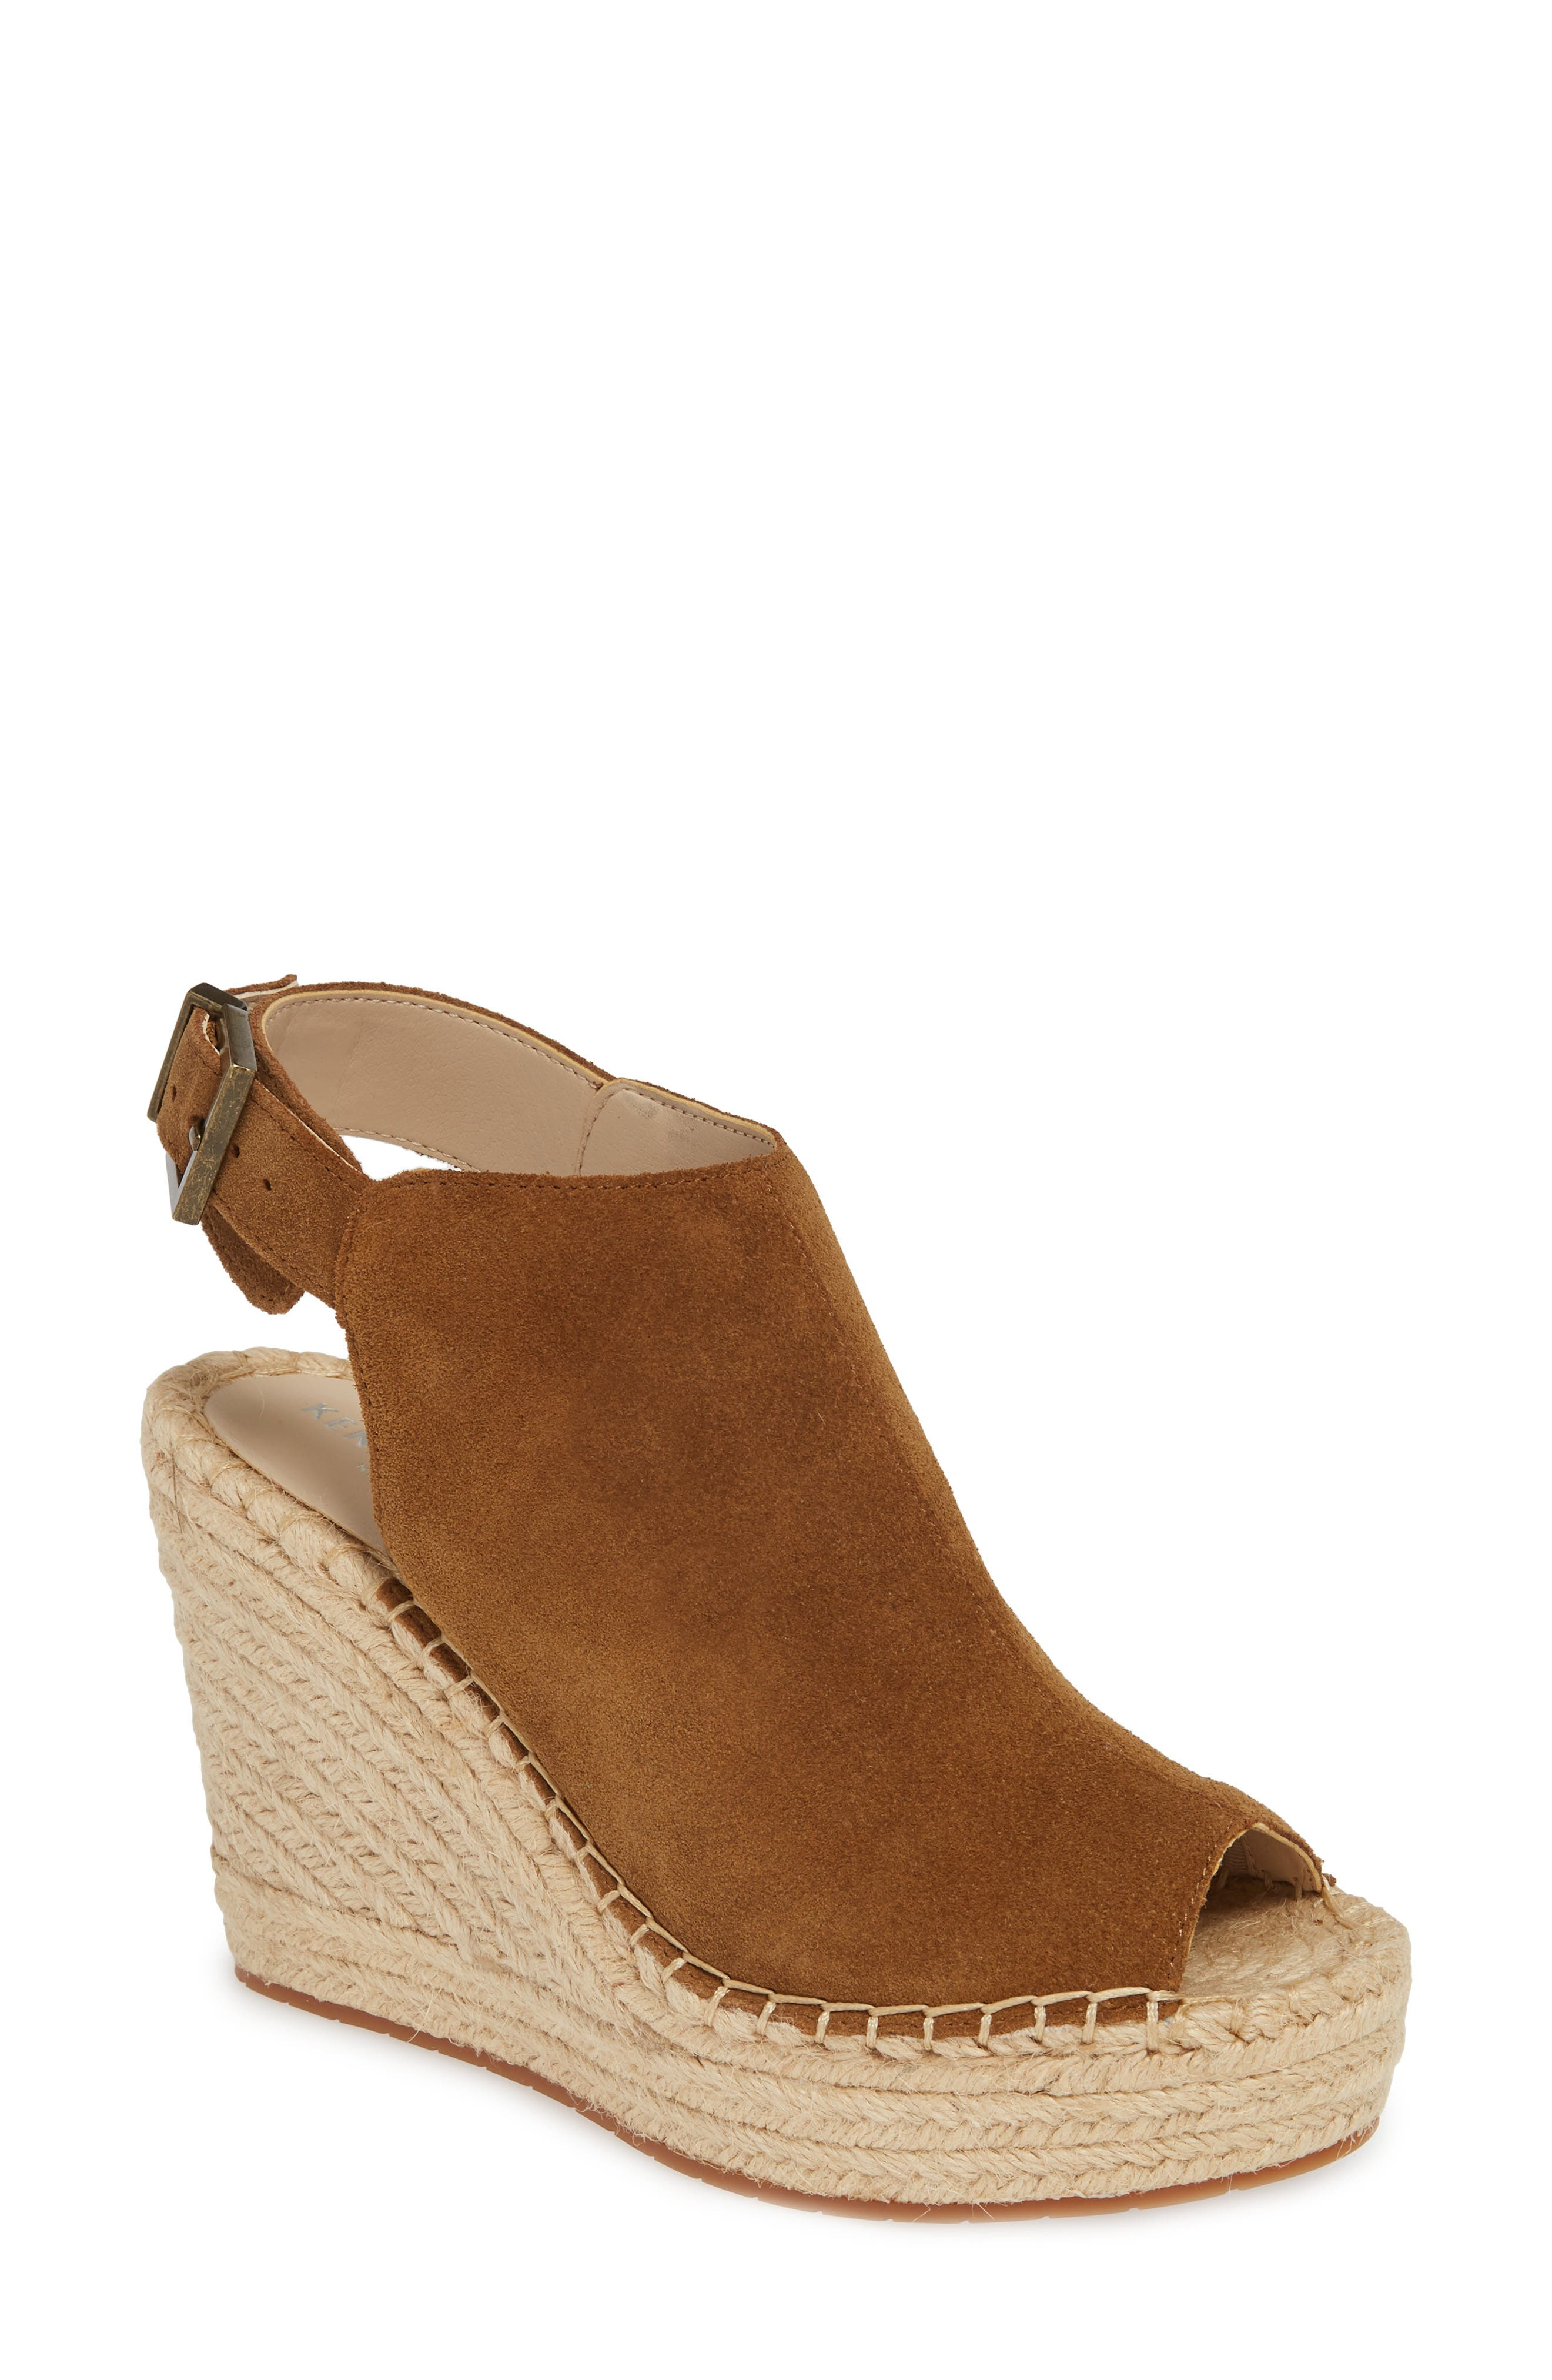 KENNETH COLE NEW YORK, 'Olivia' Espadrille Wedge Sandal, Main thumbnail 1, color, RUST SUEDE